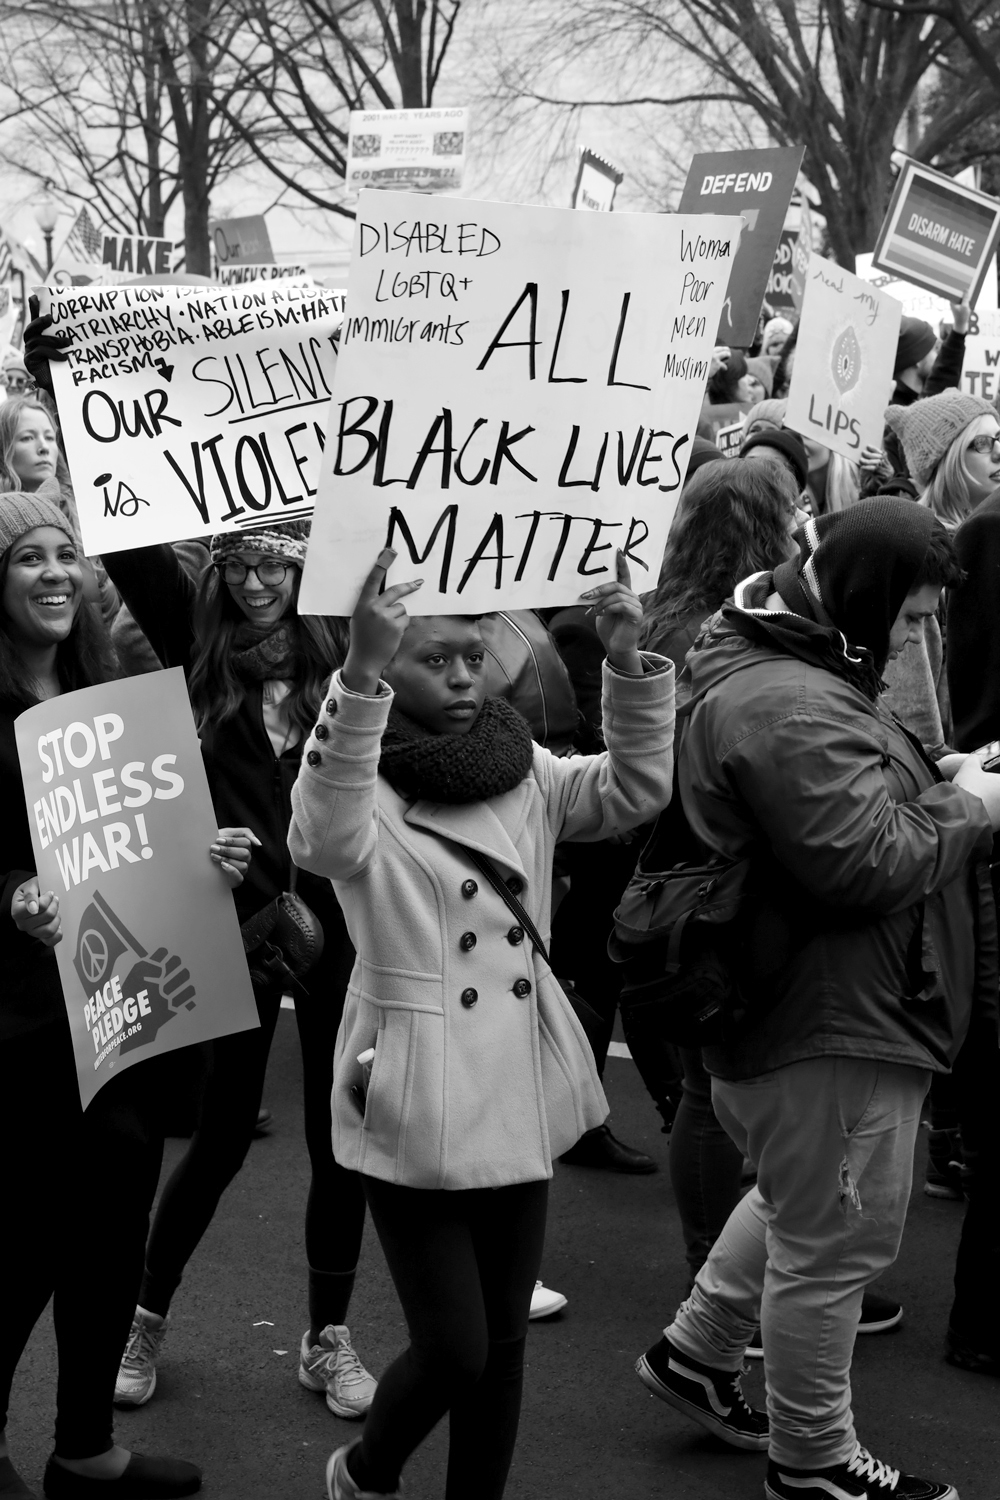 All Black Lives Matter | The Women's March | Washington, DC | January 21, 2017